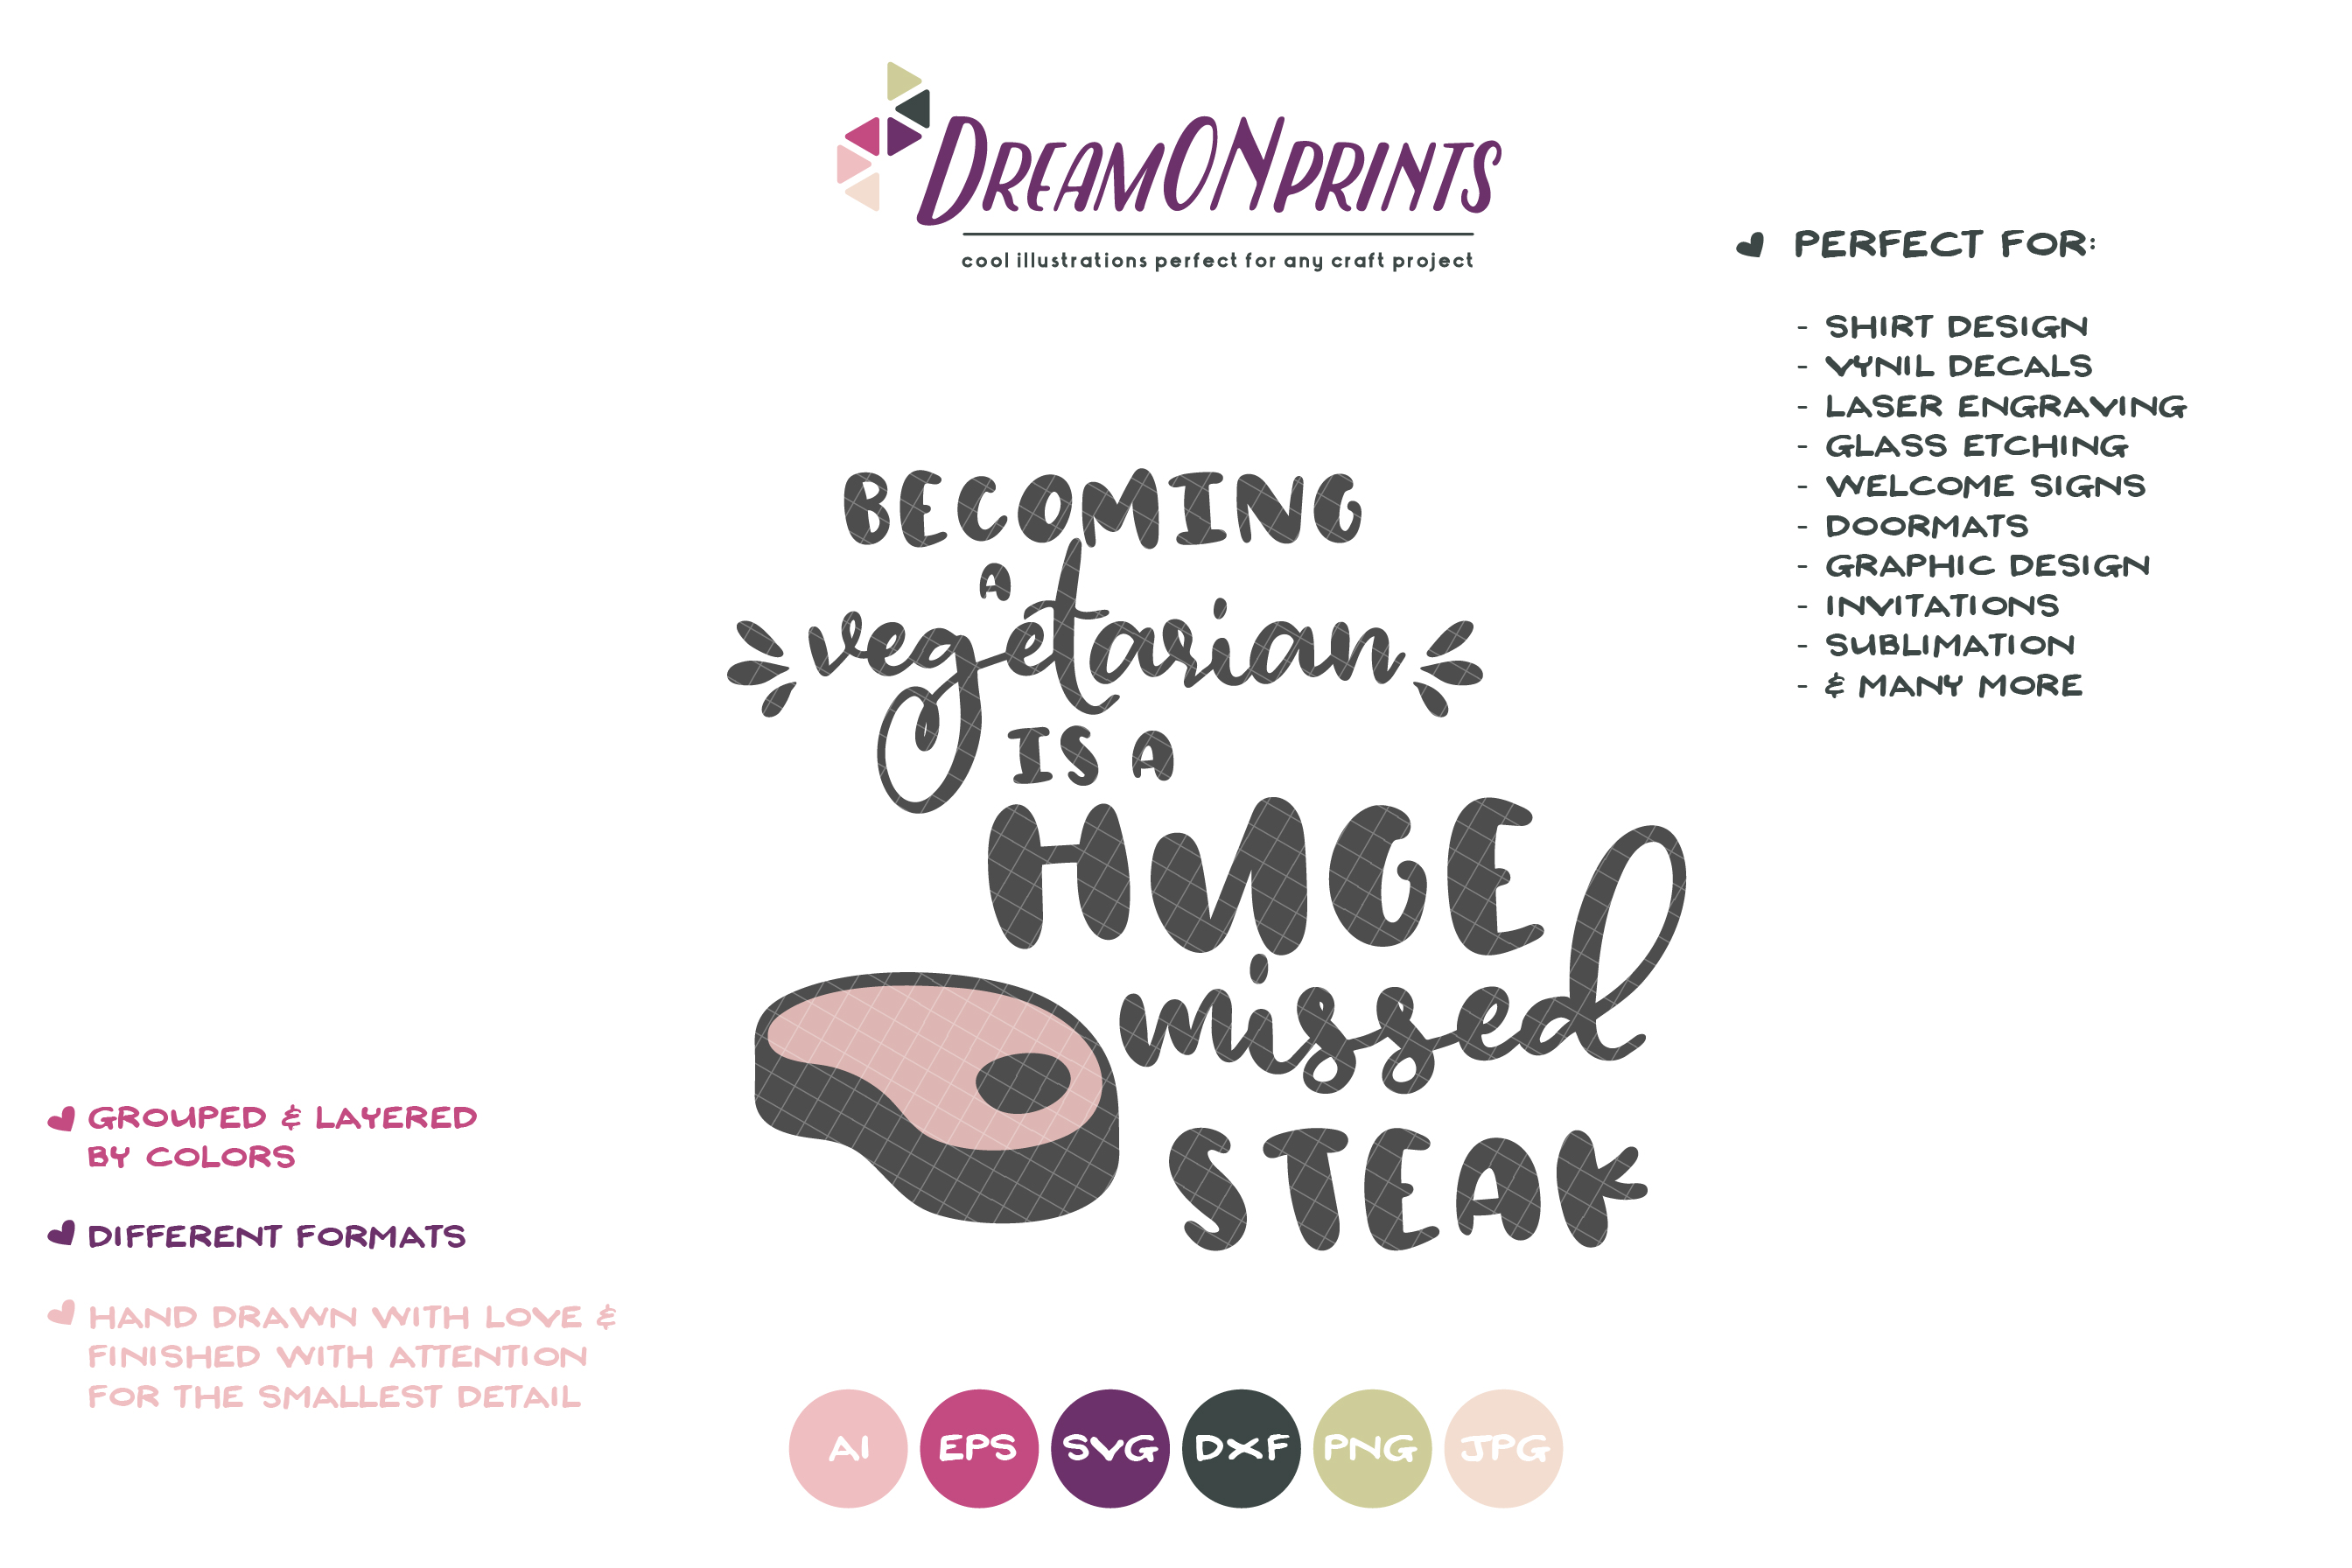 Funny Vegetarian SVG | Huge Missed Steak| Kitchen Sign example image 2